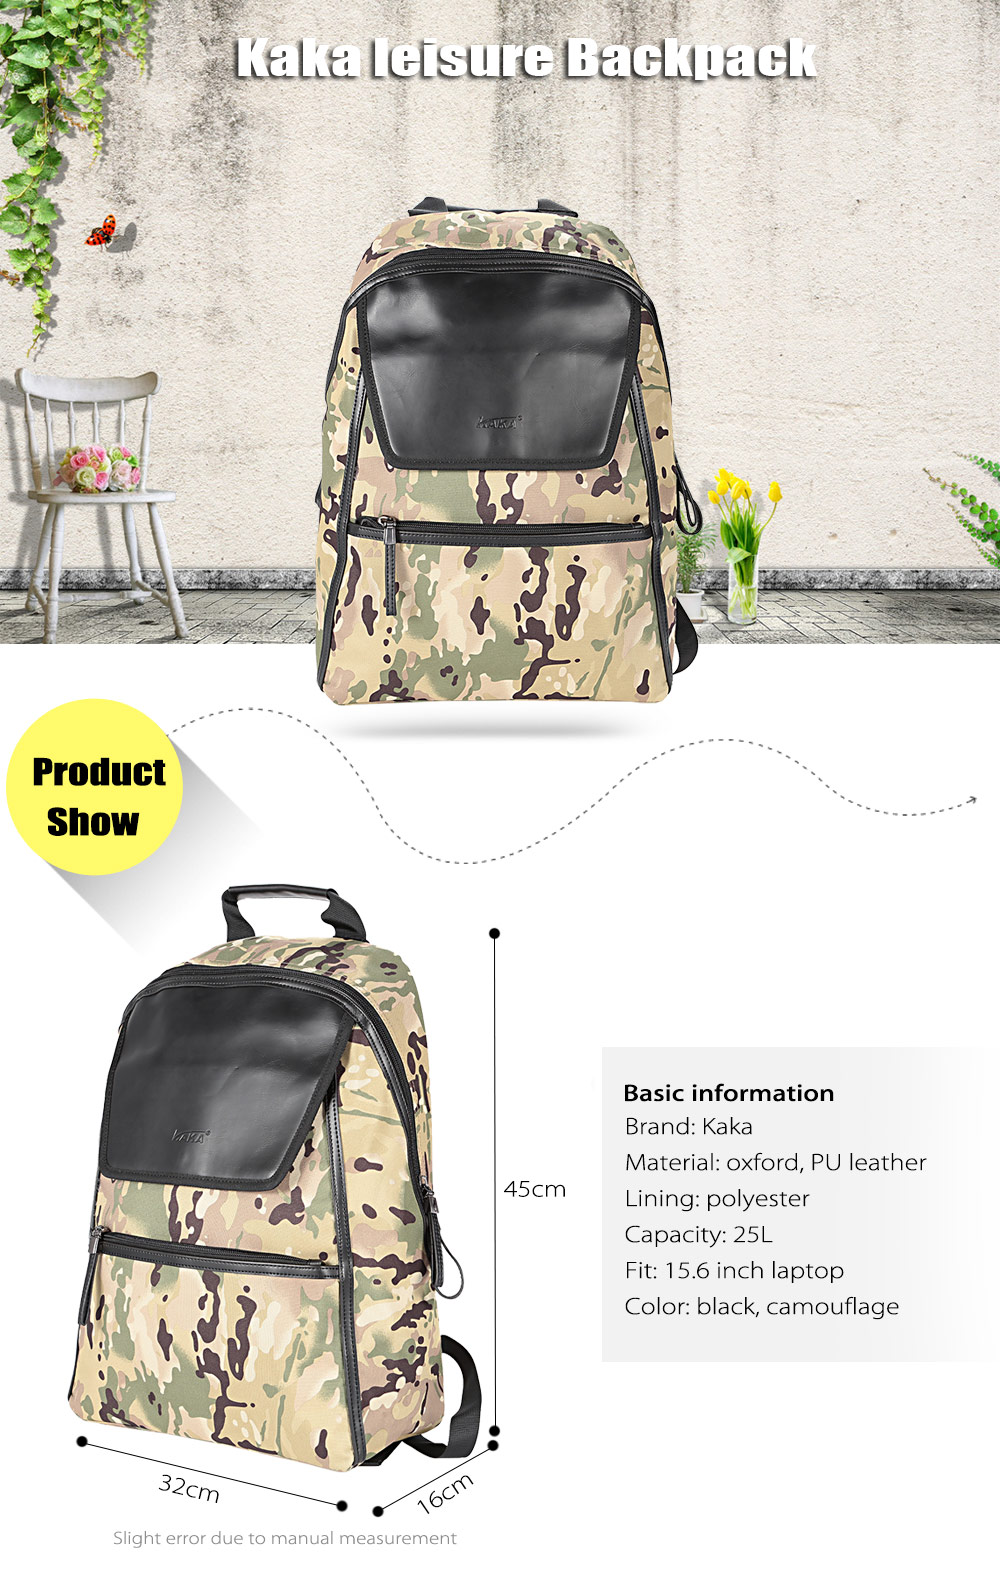 Kaka 2191 PU Leather 25L Leisure Backpack 15.6 inch Laptop Bag